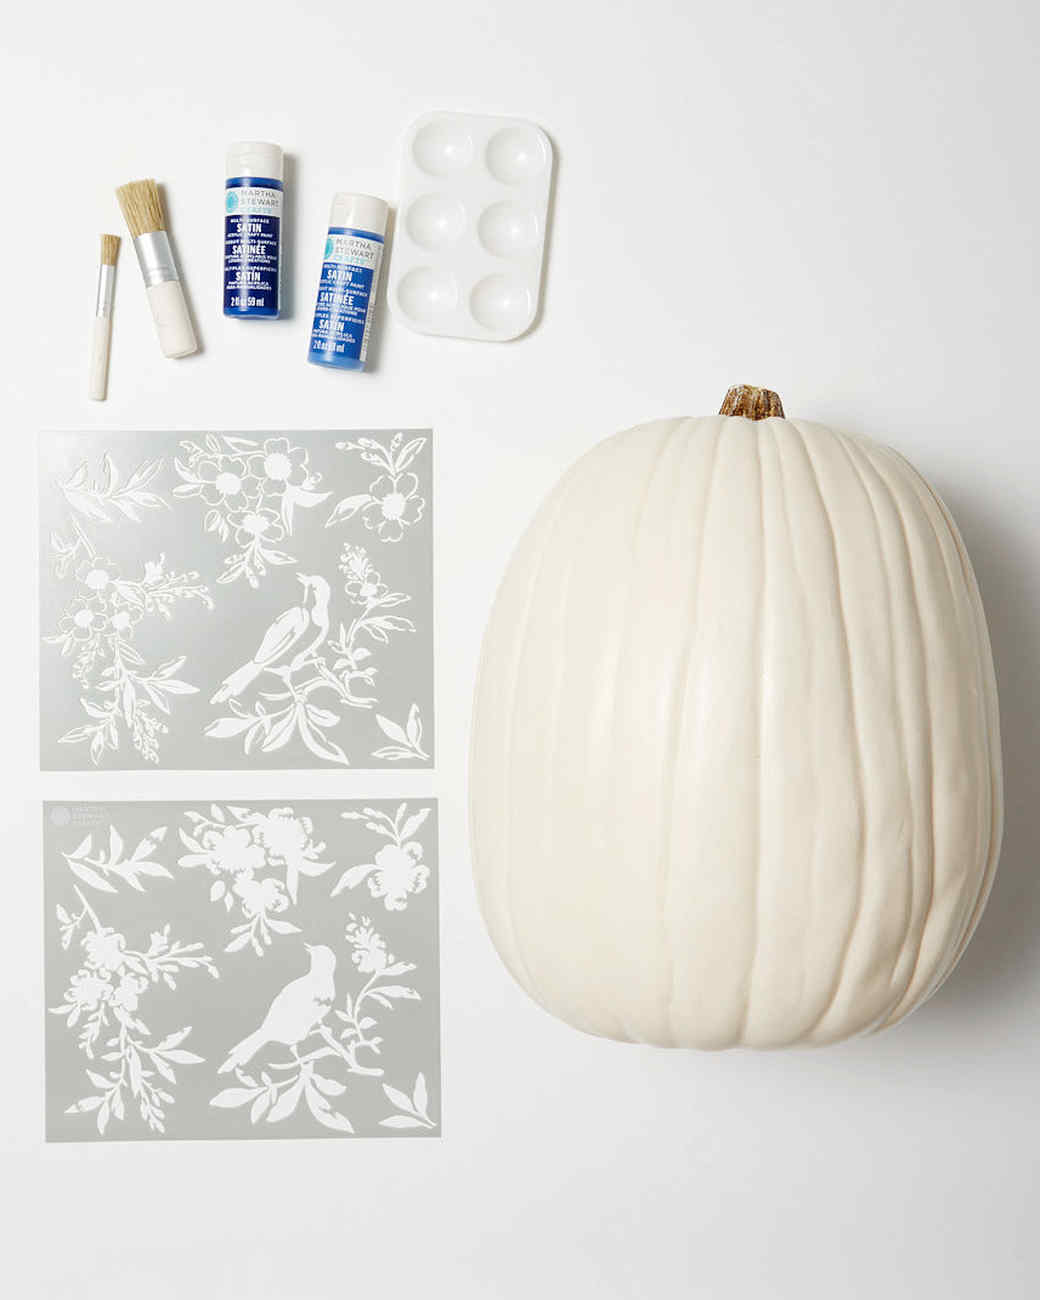 chinoiserie pumpkins materials